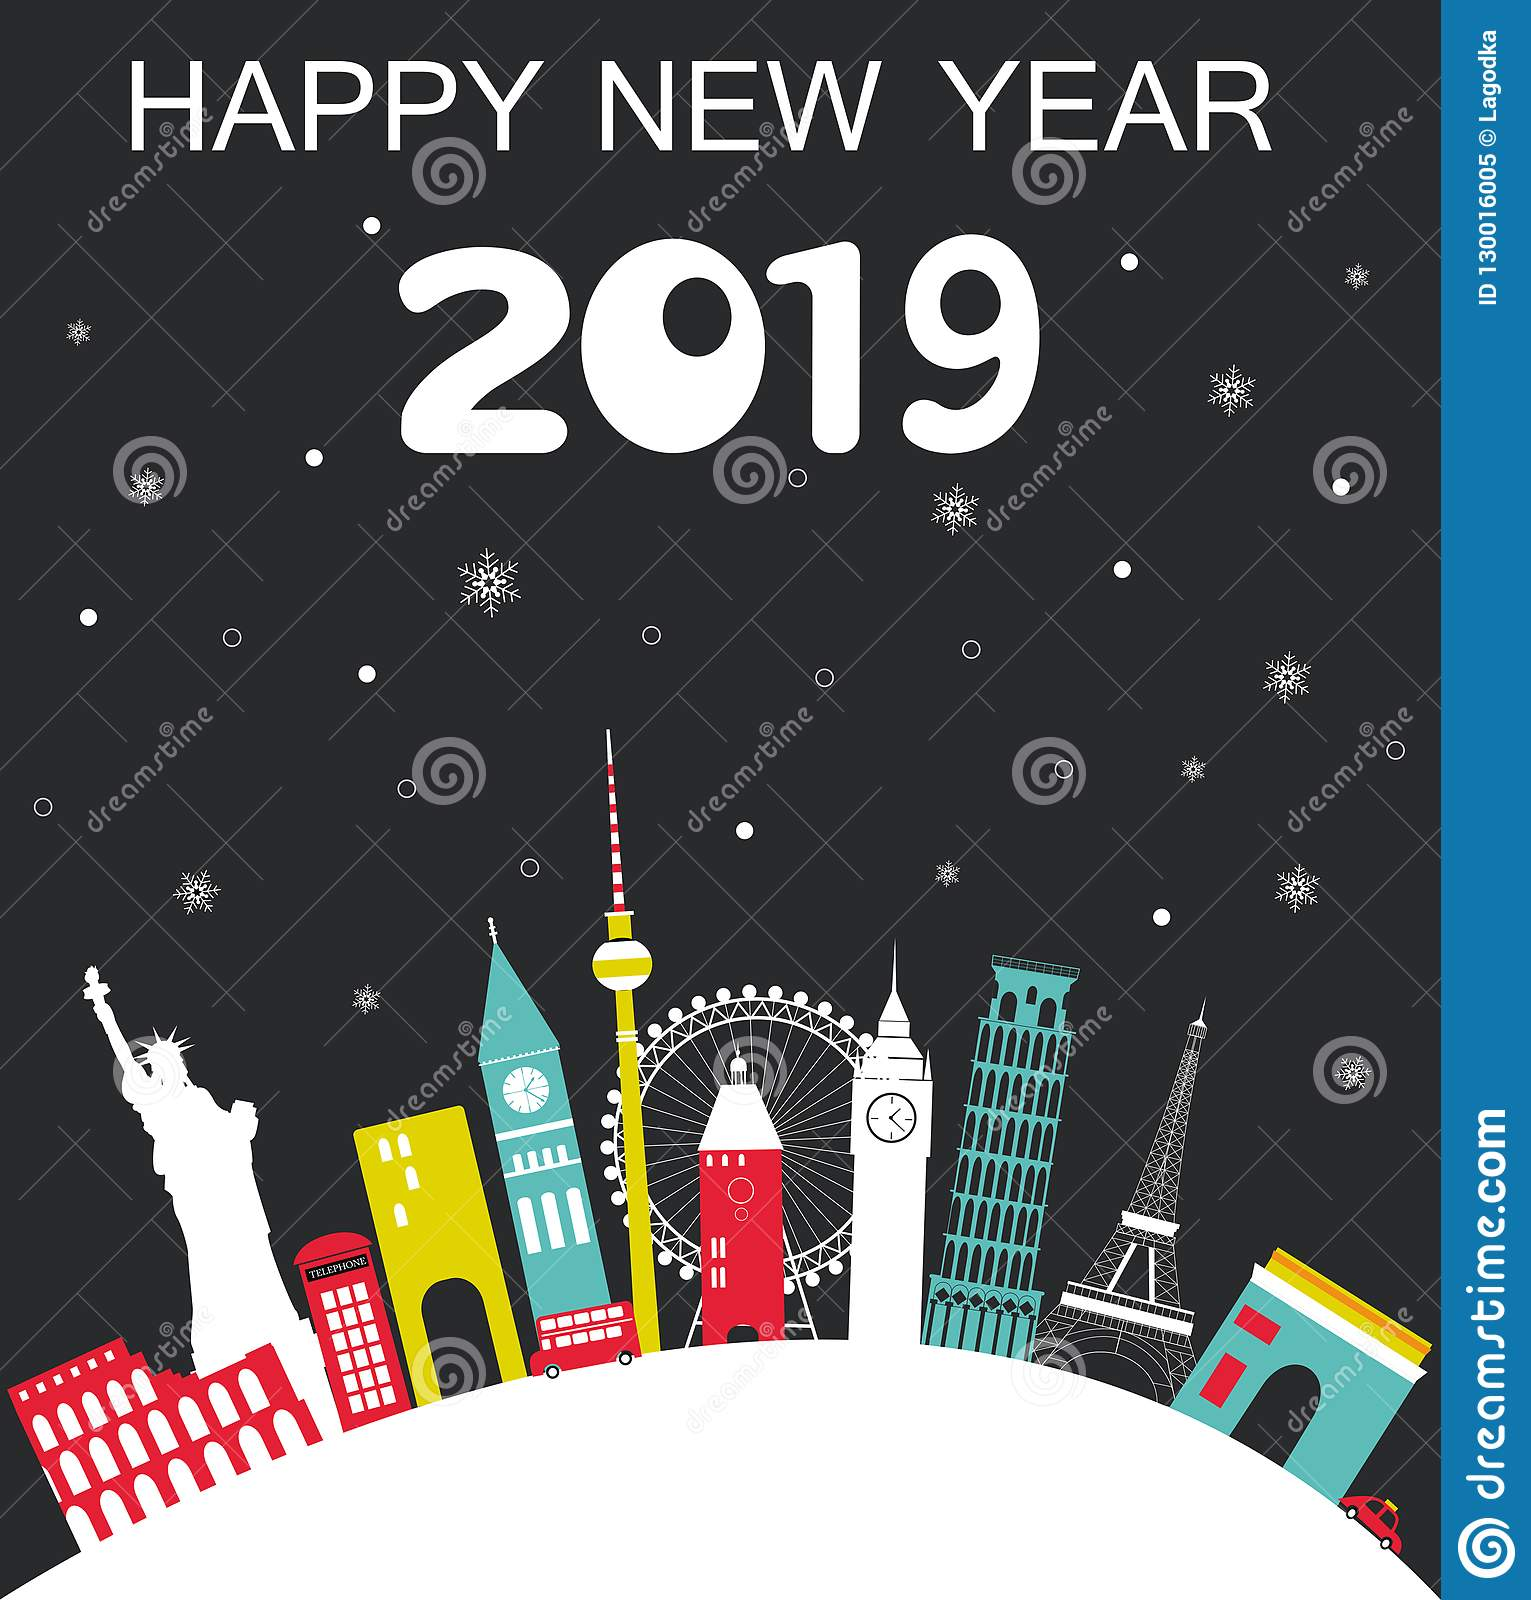 2019 Travel Trailers: Happy New Year 2019 Travel Background Stock Vector